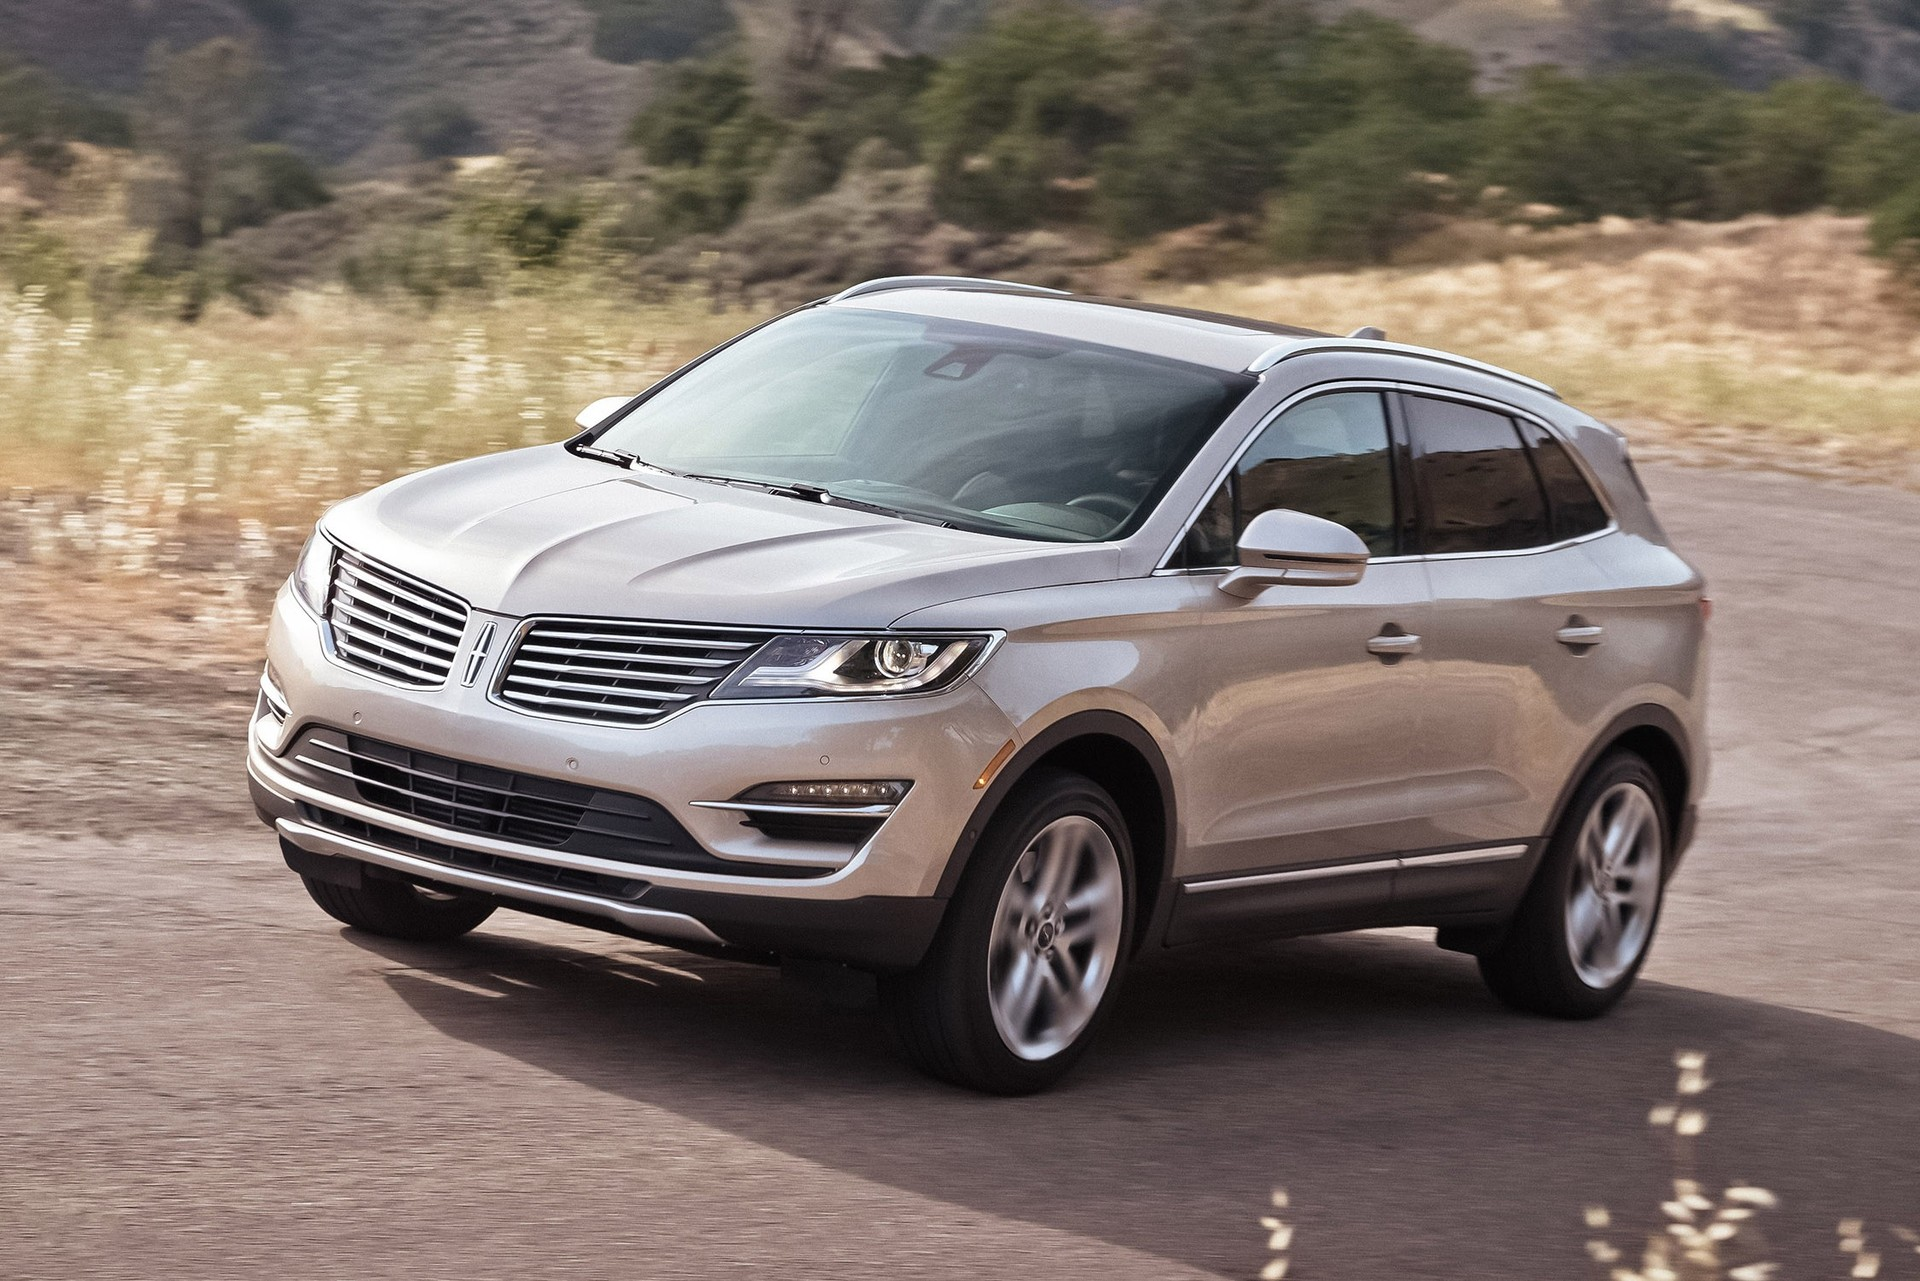 Mercedes Benz Of Memphis >> 2015 Lincoln MKC Review, Ratings, Specs, Prices, and Photos - The Car Connection